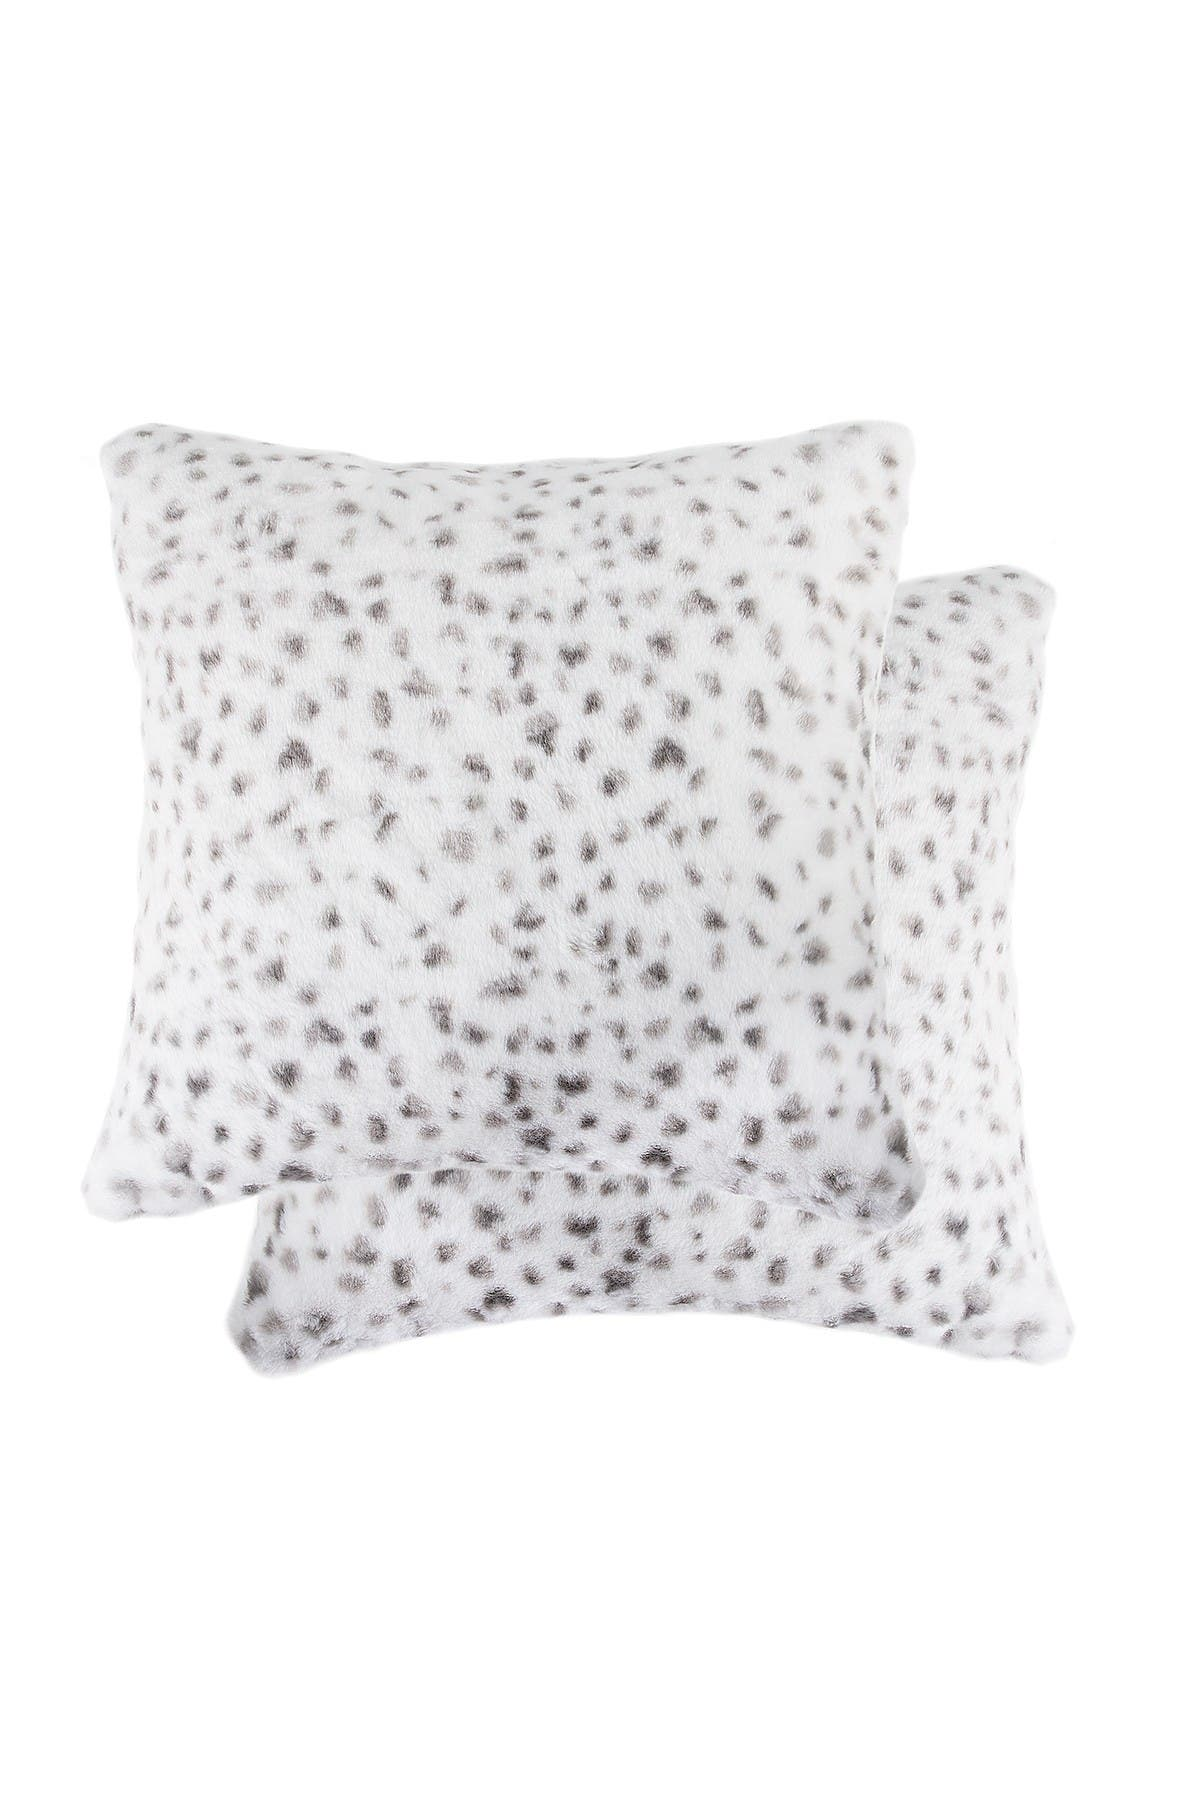 "Image of LUXE Belton Snow Leopard Faux Fur 2-Pack Pillows - 18"" x 18"""